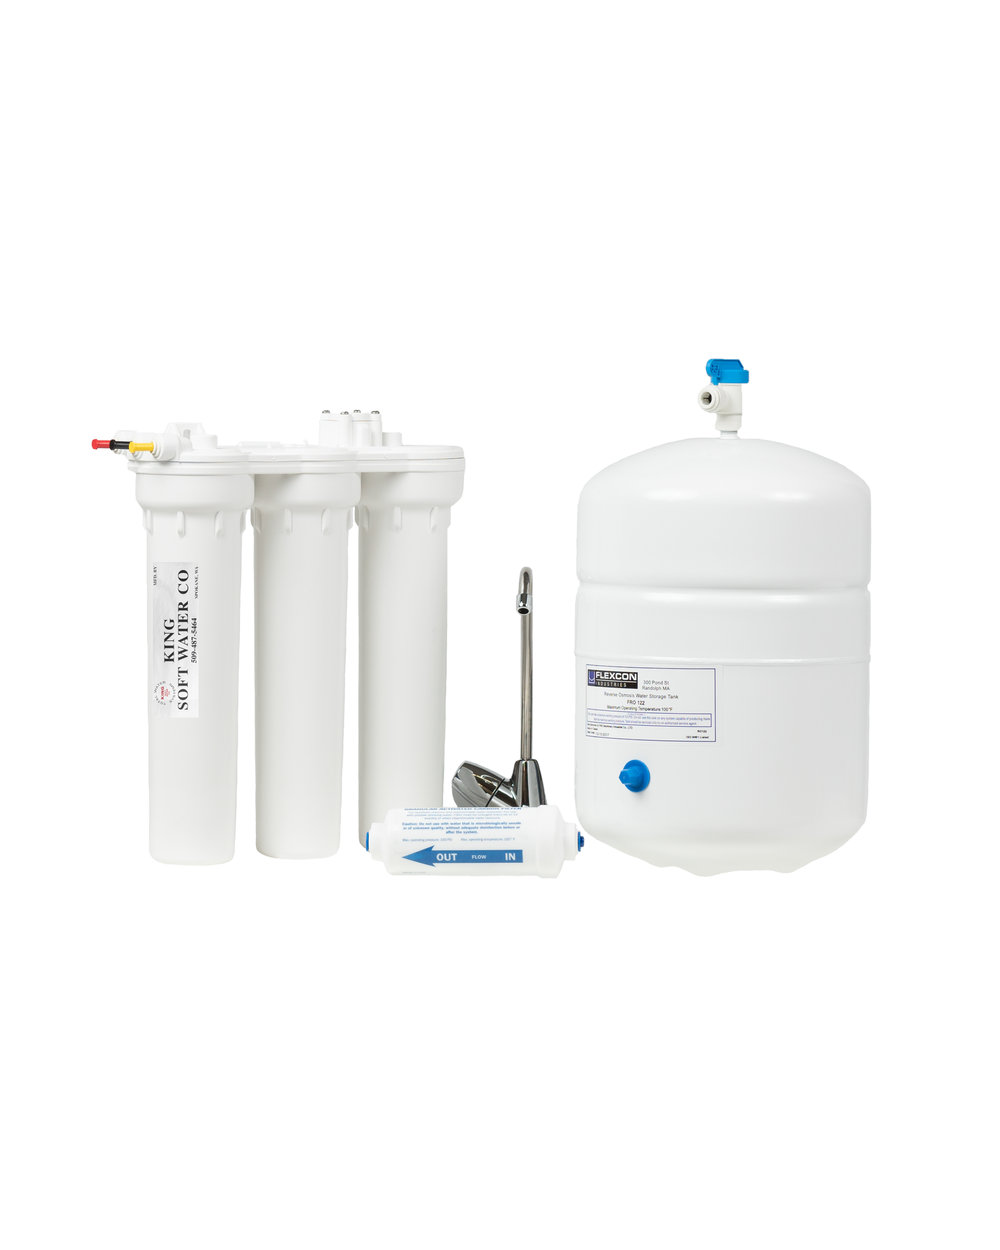 KING Microline Reverse Osmosis System - FEATURES:· 4 stages of high performance filtration· High Capacity Tank· Automatic Shut-Off· High Performance T.F.C. Membrane· Compact System· Patented channel design· Environmentally sound: no chemicals· Cost Effective: No more purchasing bottled water· Variety of designer faucets available· Crisp, delicious and refreshing drinking water for the whole family!